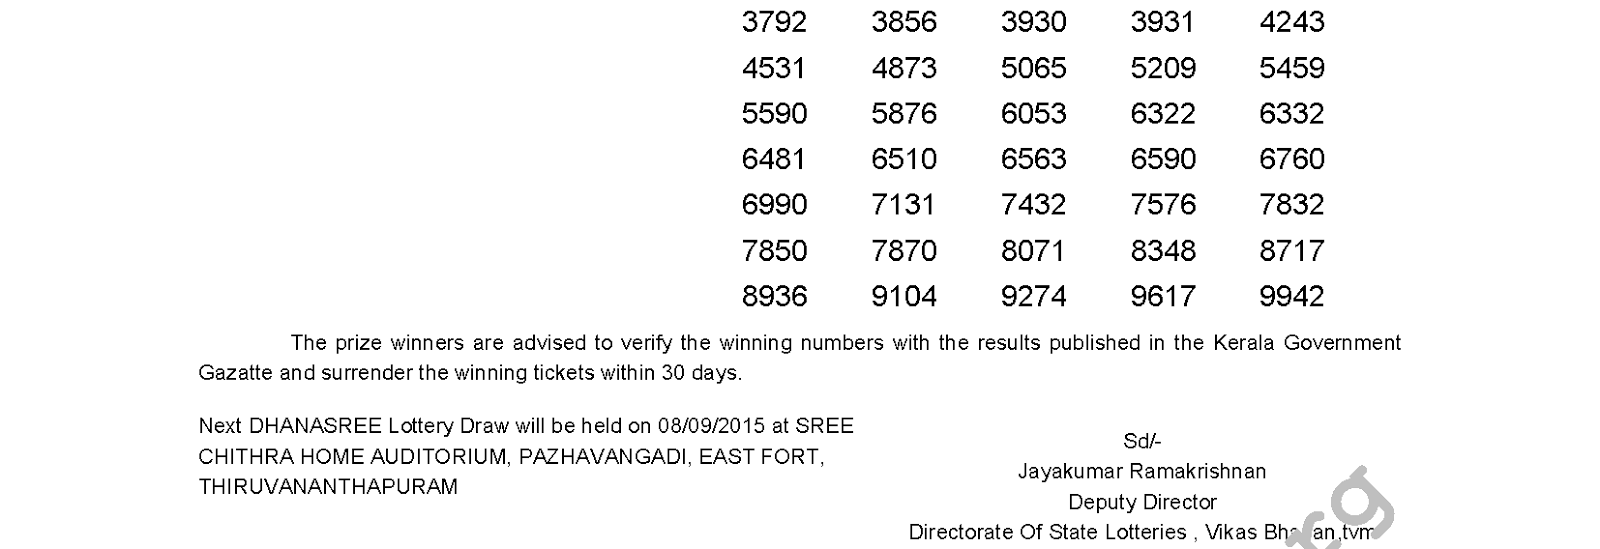 DHANASREE Lottery DS 201 Result 1-9-2015